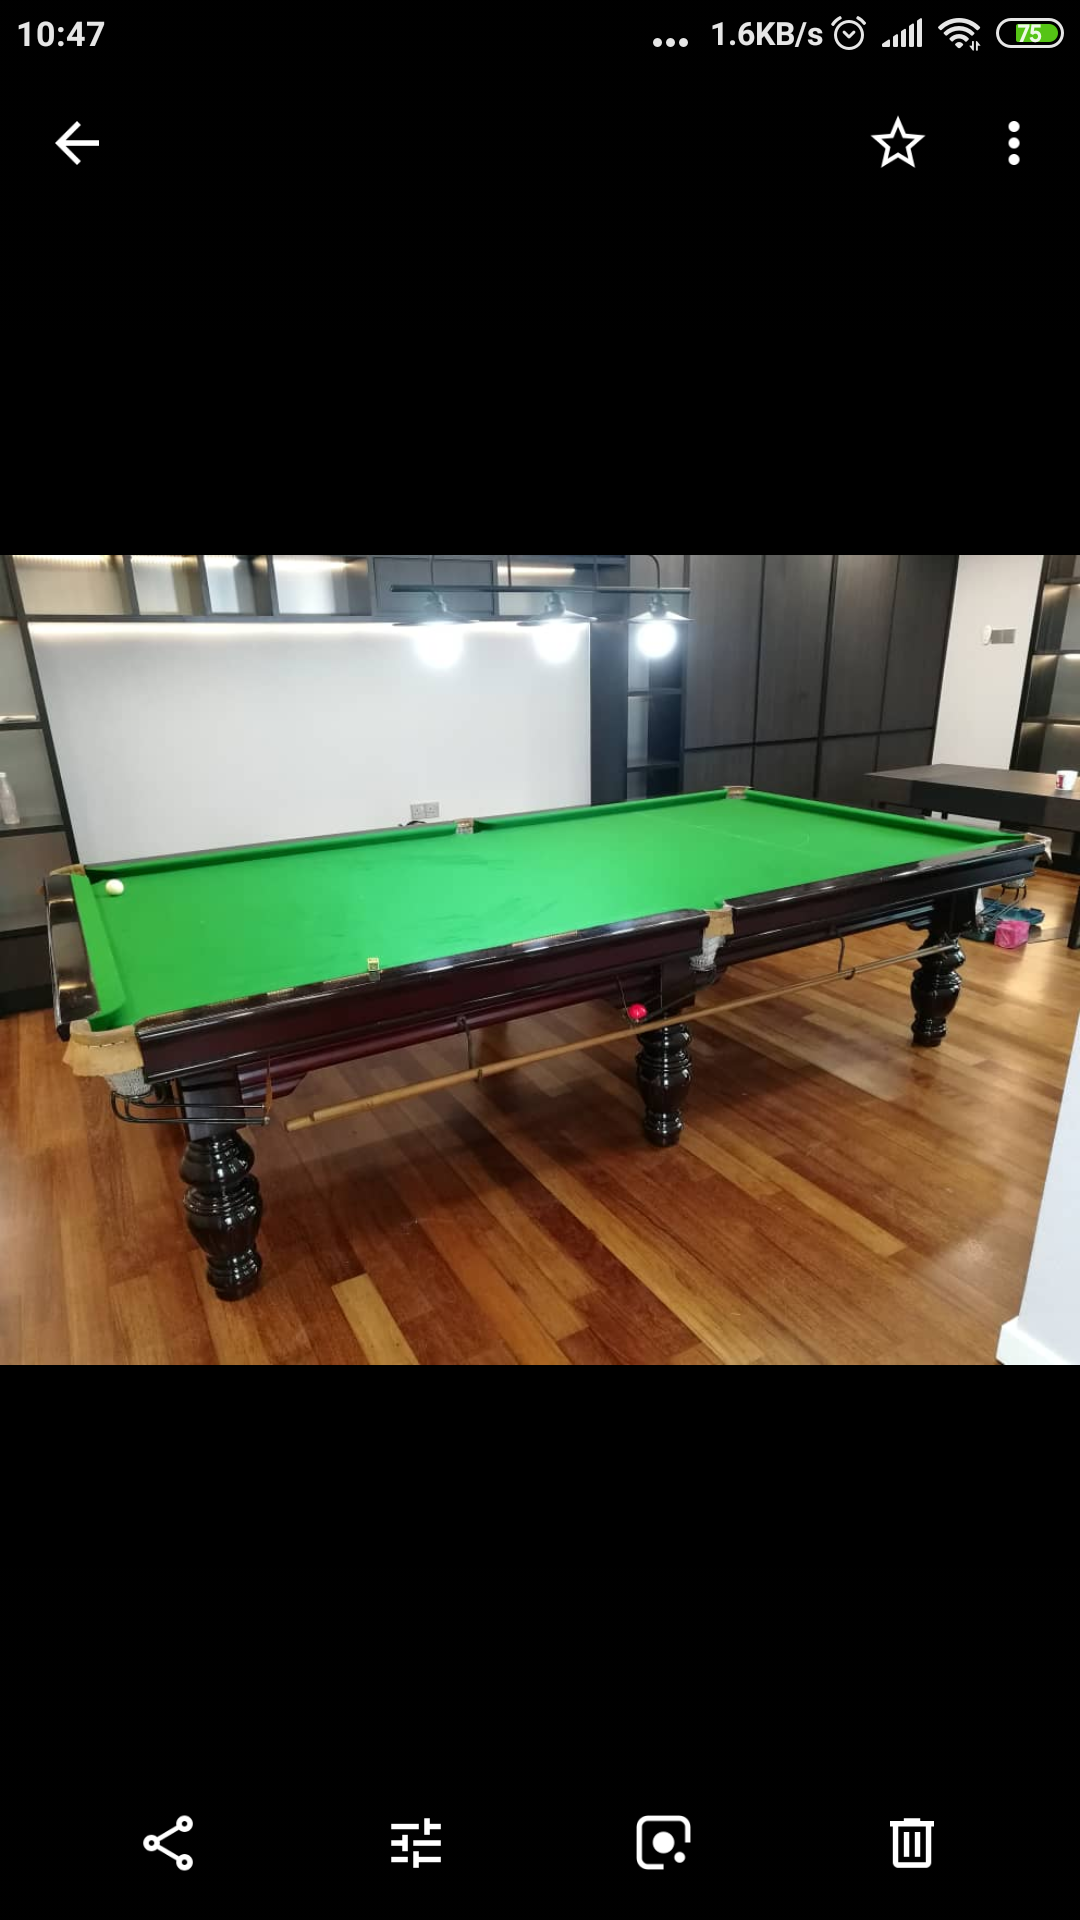 10 Foot Snooker Table Just Reclothed In Time For Cny Relocation